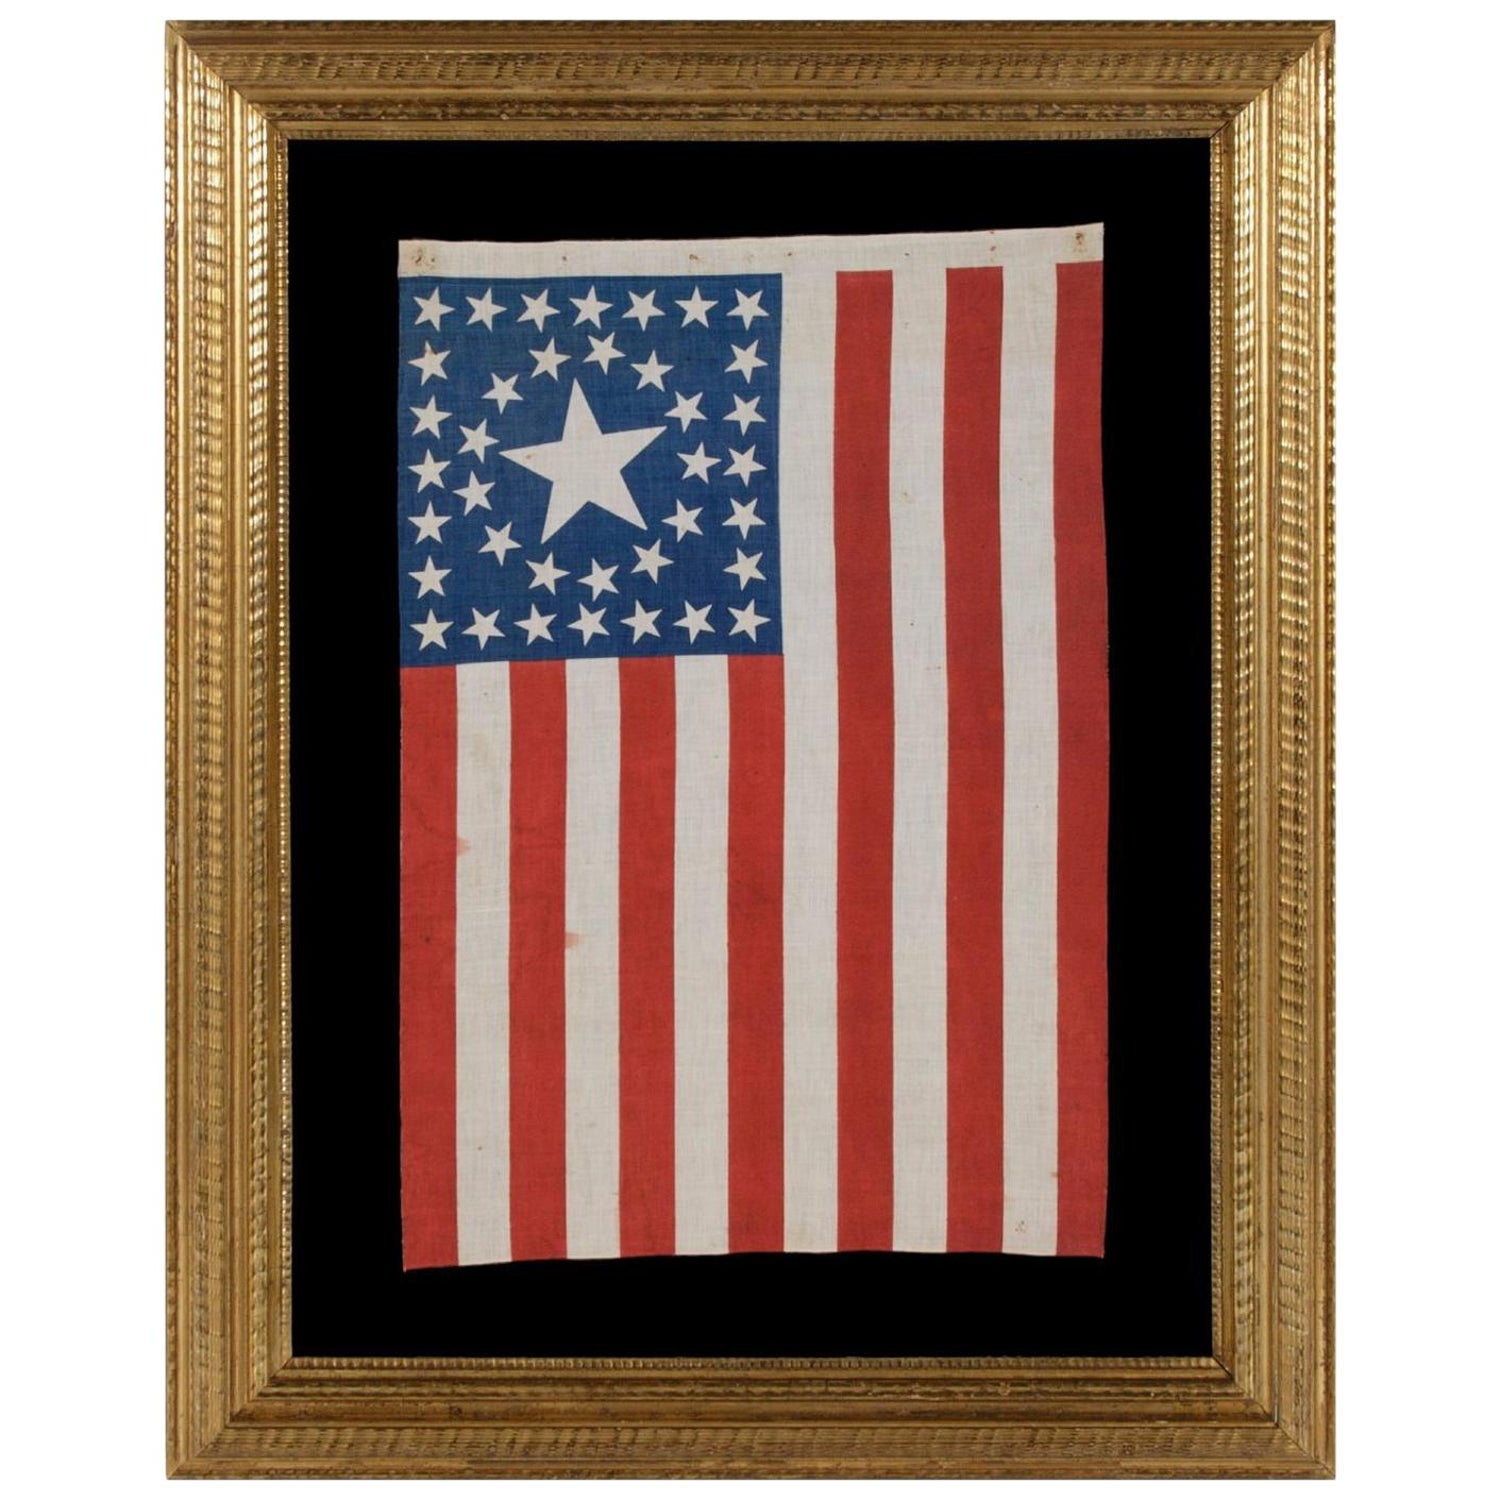 be8fc4f3a31 38 Star Flag with Stars in a Circle-in-a-Square Medallion Configuration